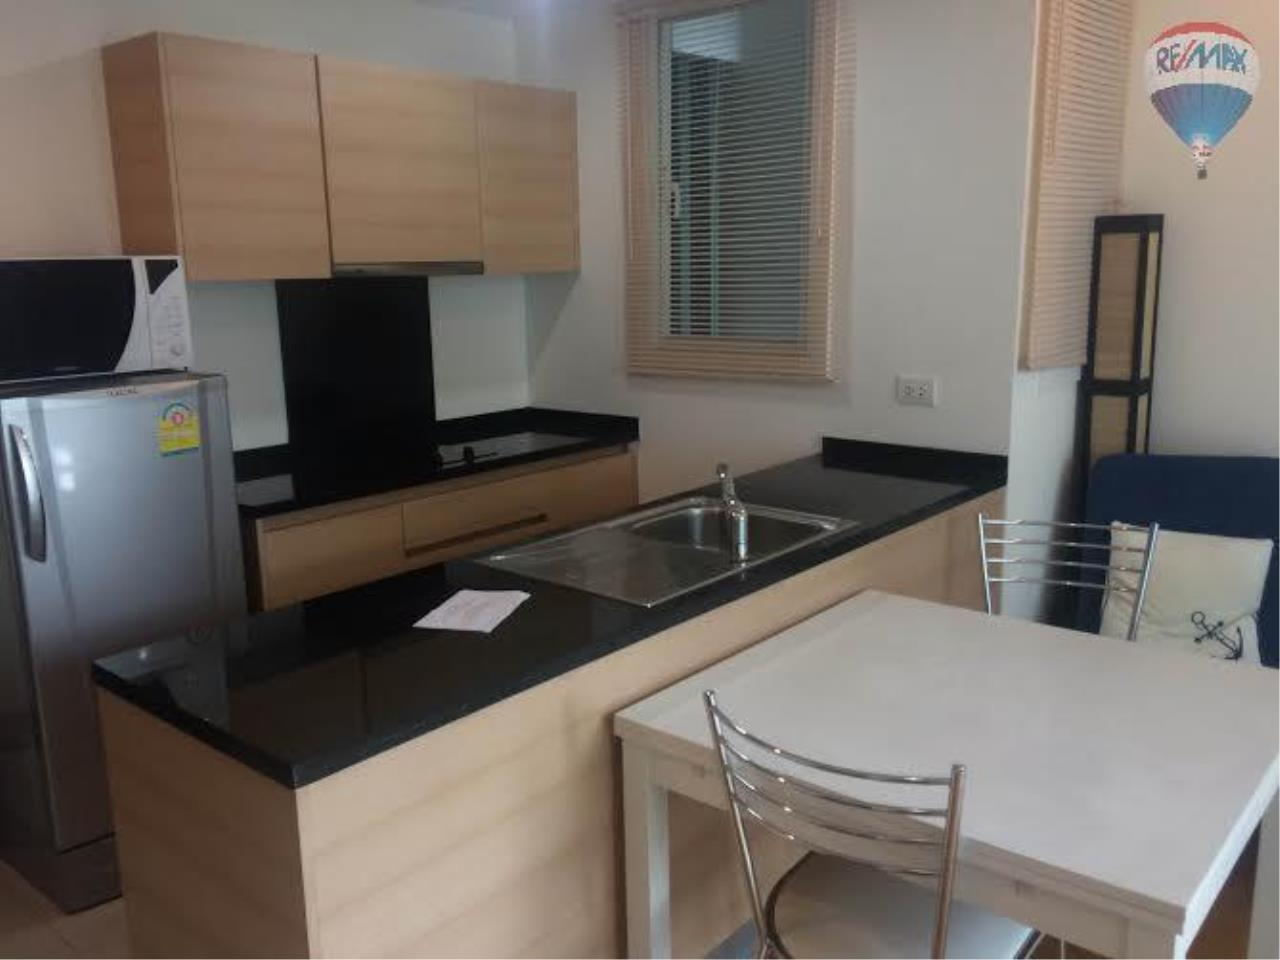 RE/MAX Properties Agency's 1 bedroom 51 Sq.M. for rent at Wind Sukhumvit 23  1